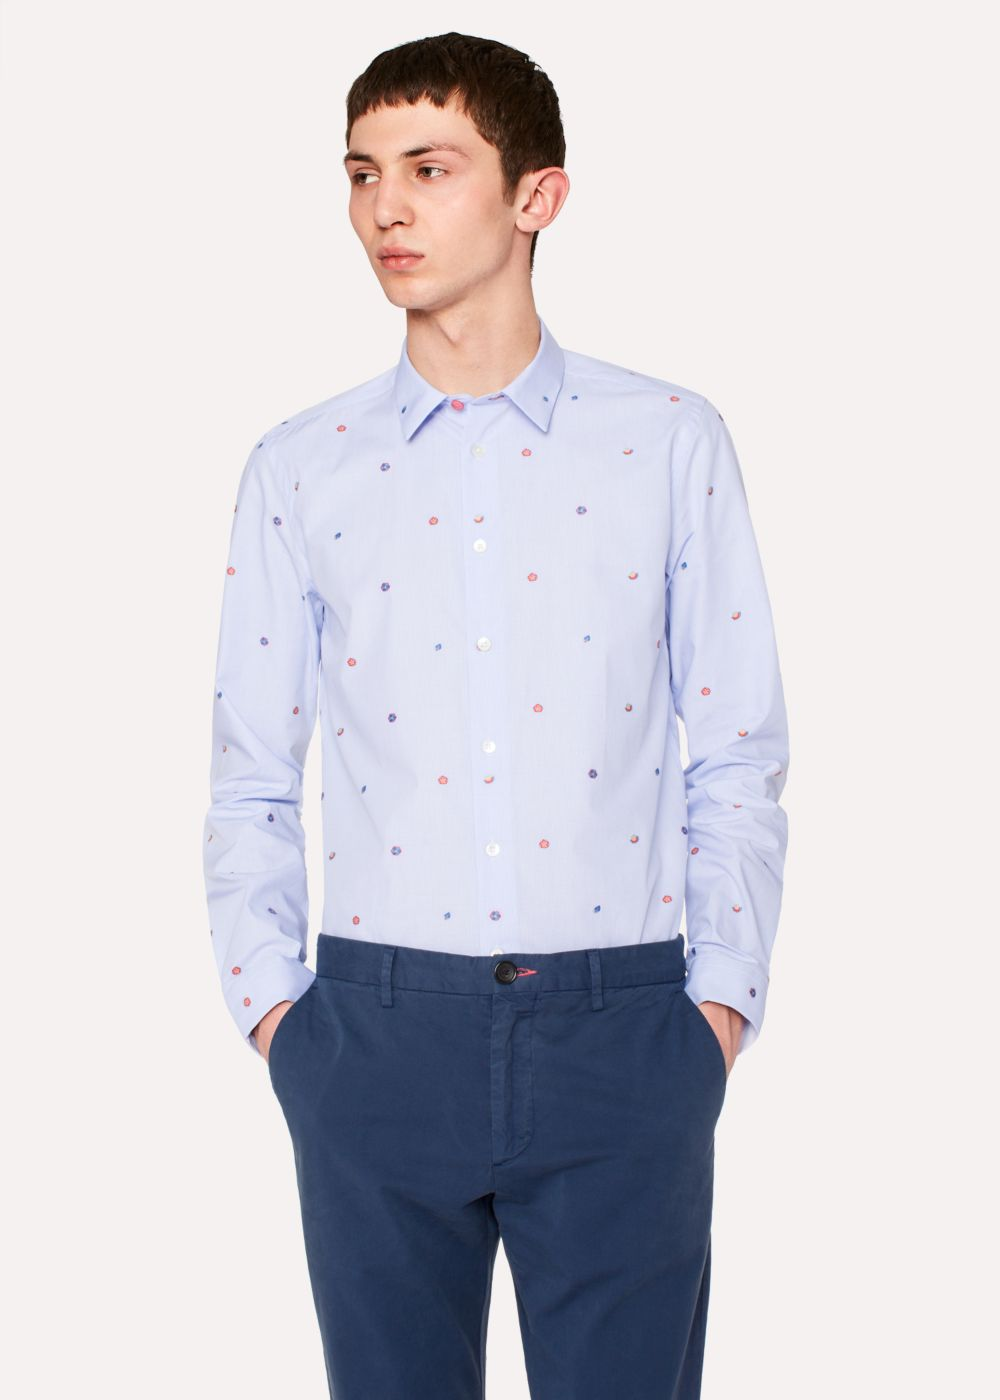 Paul Smith Men's Slim-Fit Sky Blue Micro-Check 'Kyoto Floral' Embroidered Cotton Shirt